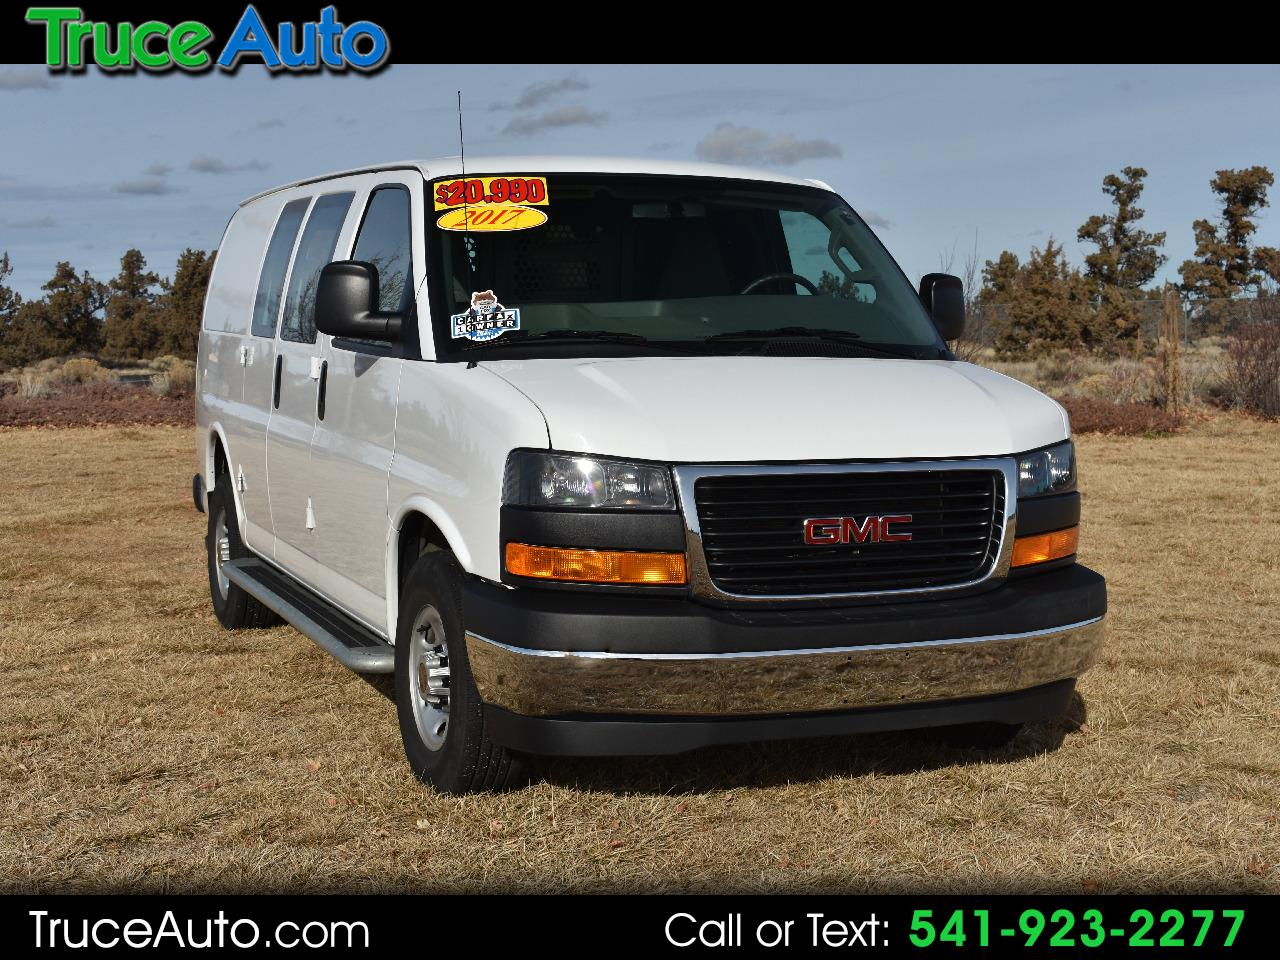 2017 GMC Savana Cargo Van 2500 ***10,155 MILES*** ONE OWNER***